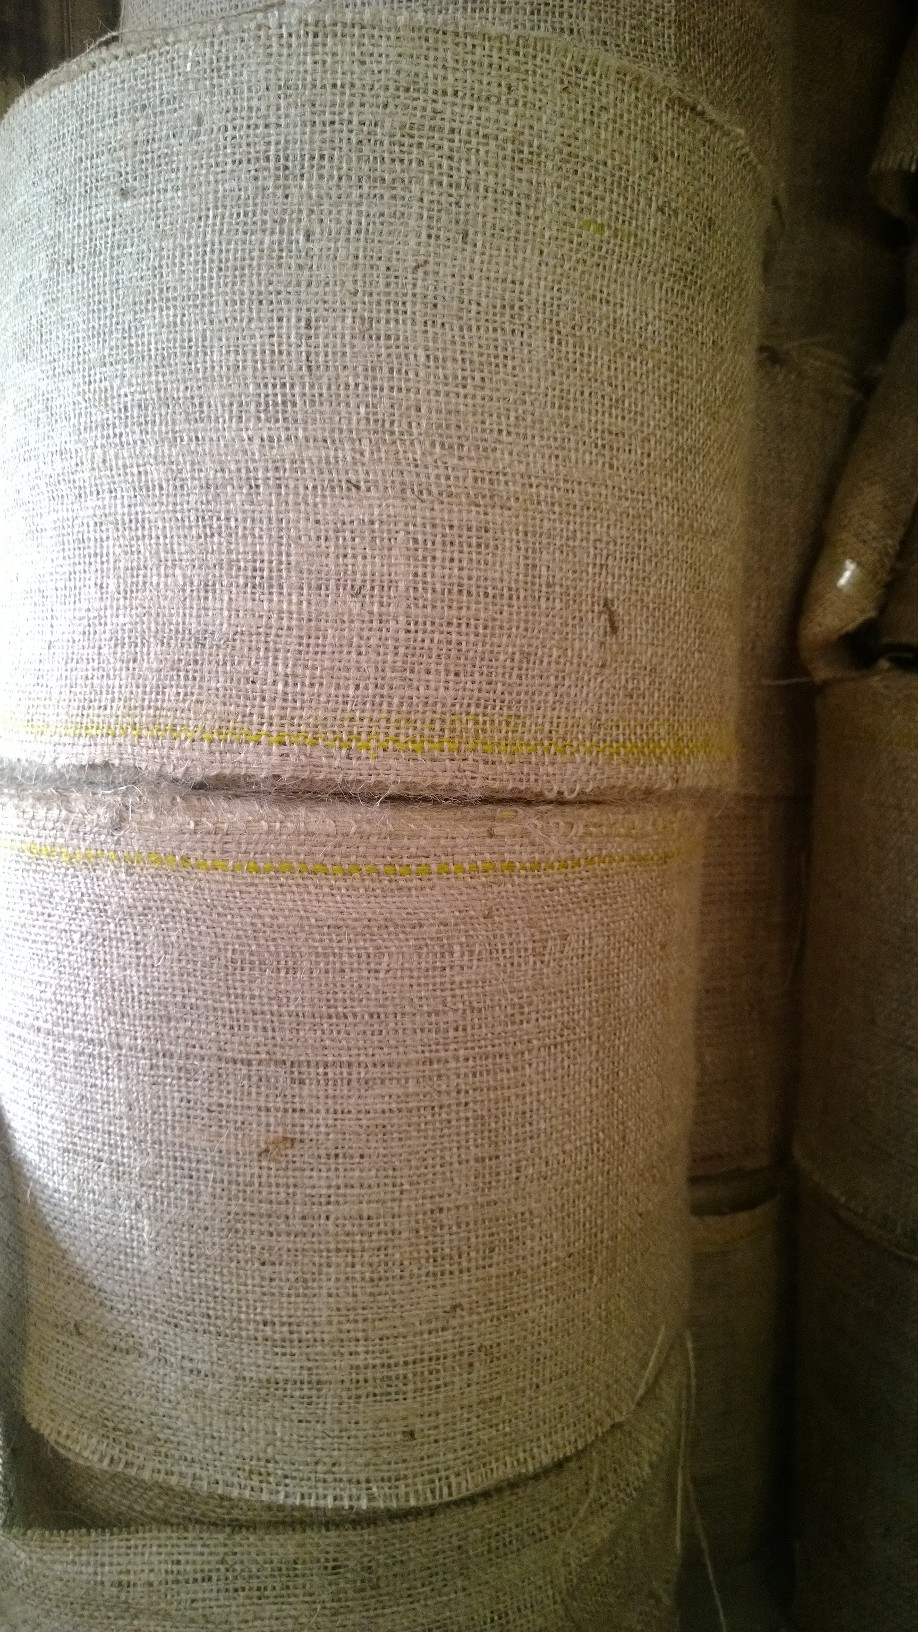 8 inch wide 10oz burlap roll - 100 Yards (colored stripe)